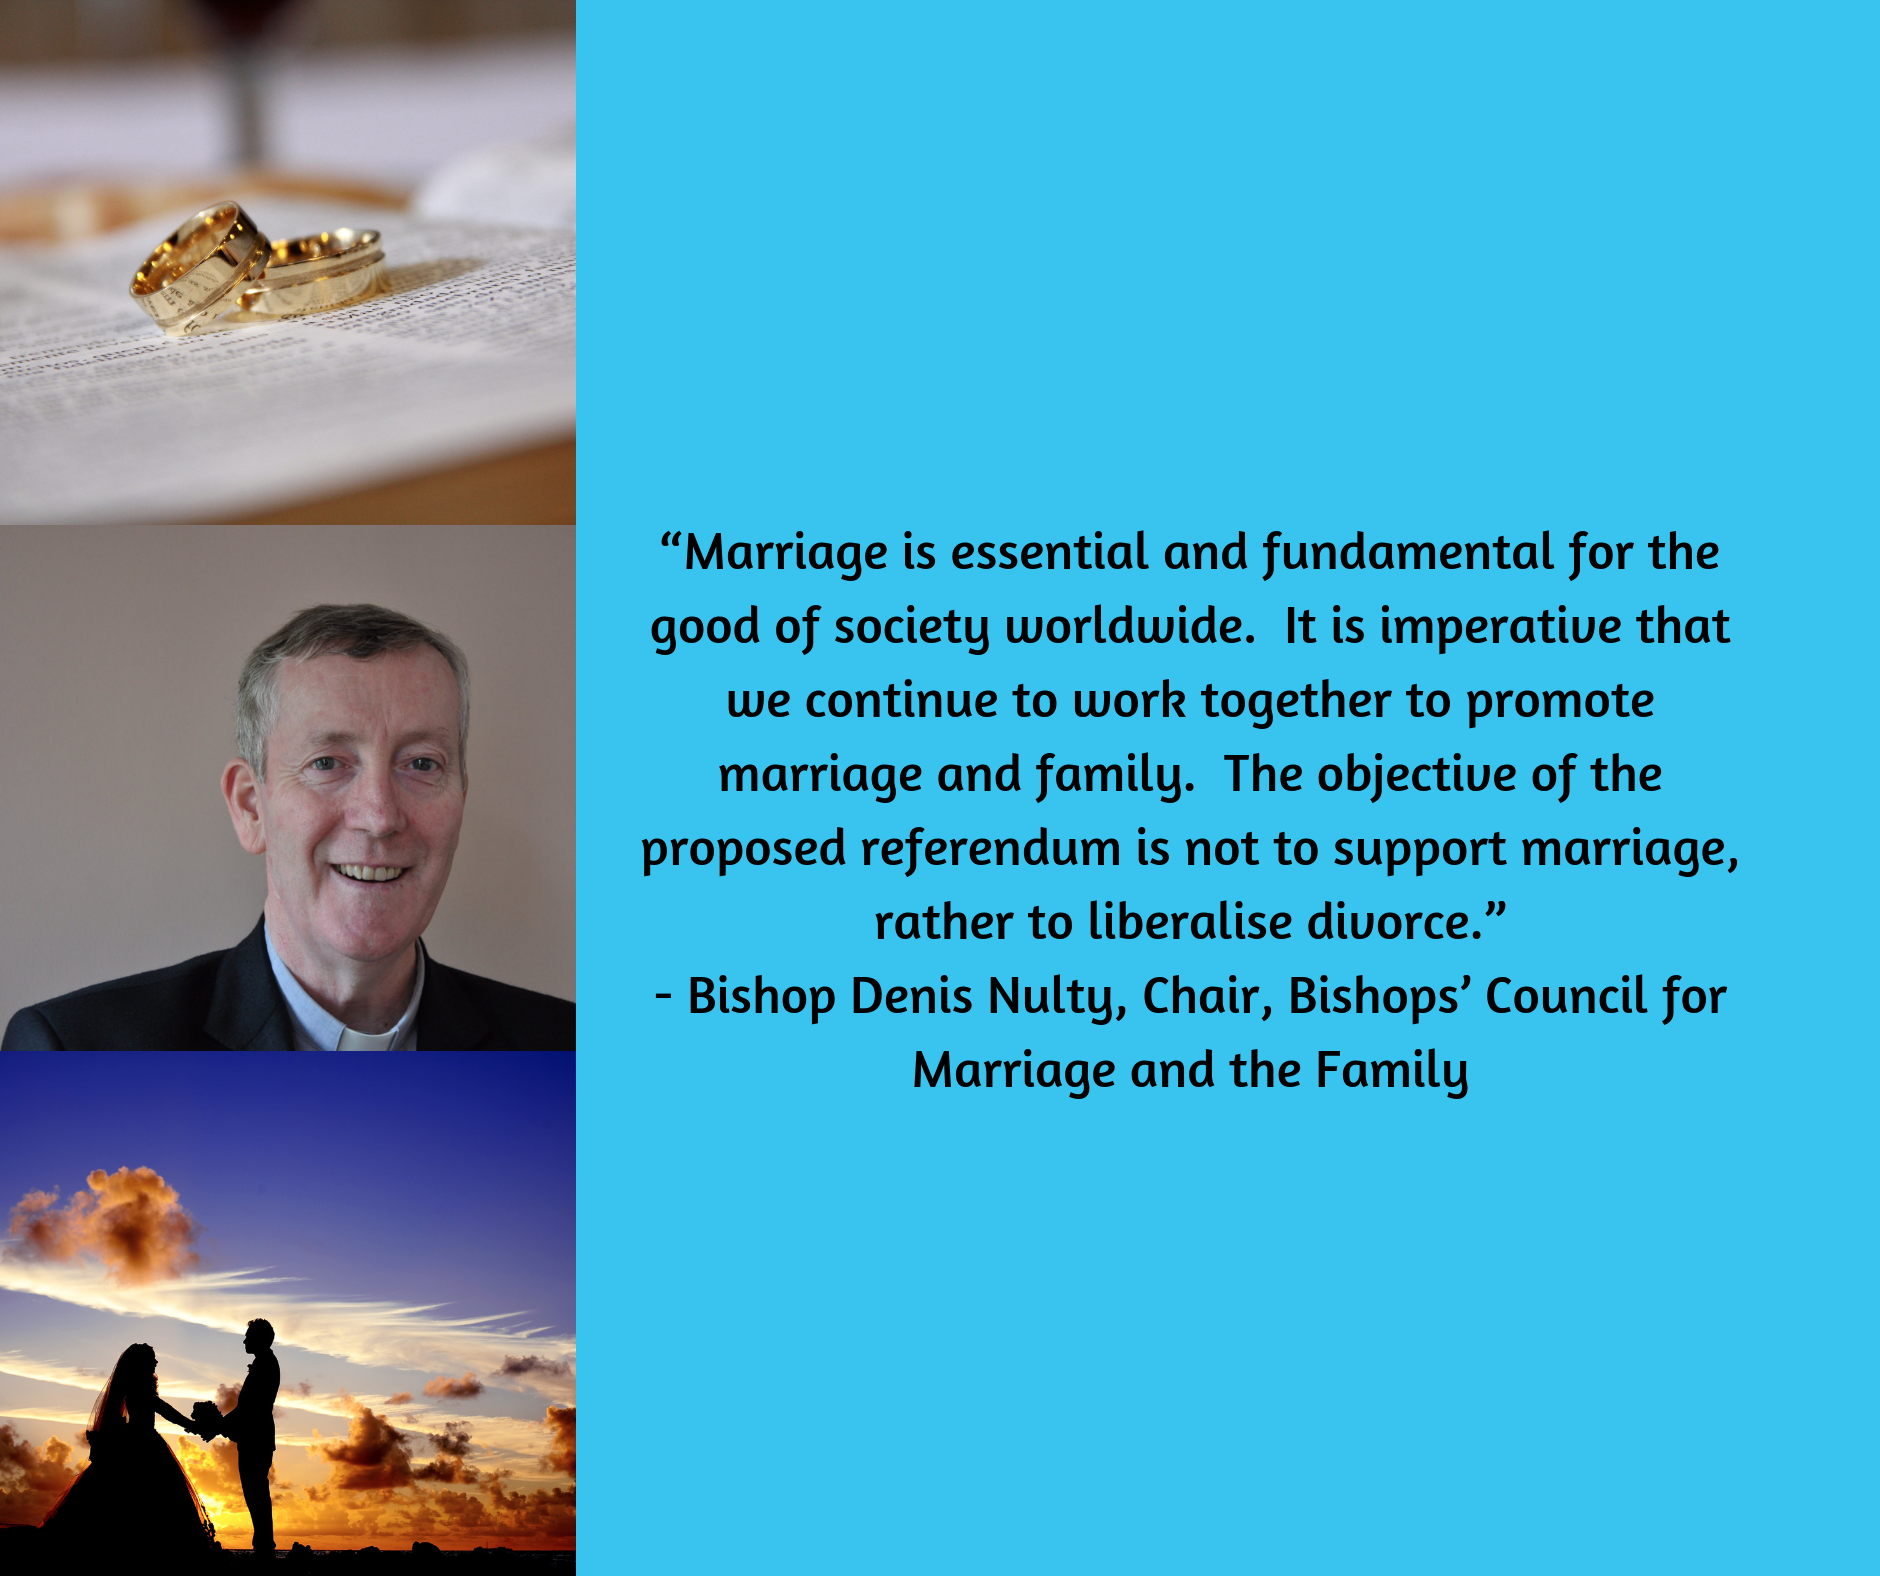 Statement by Bishop Denis Nulty, chair of the Council for